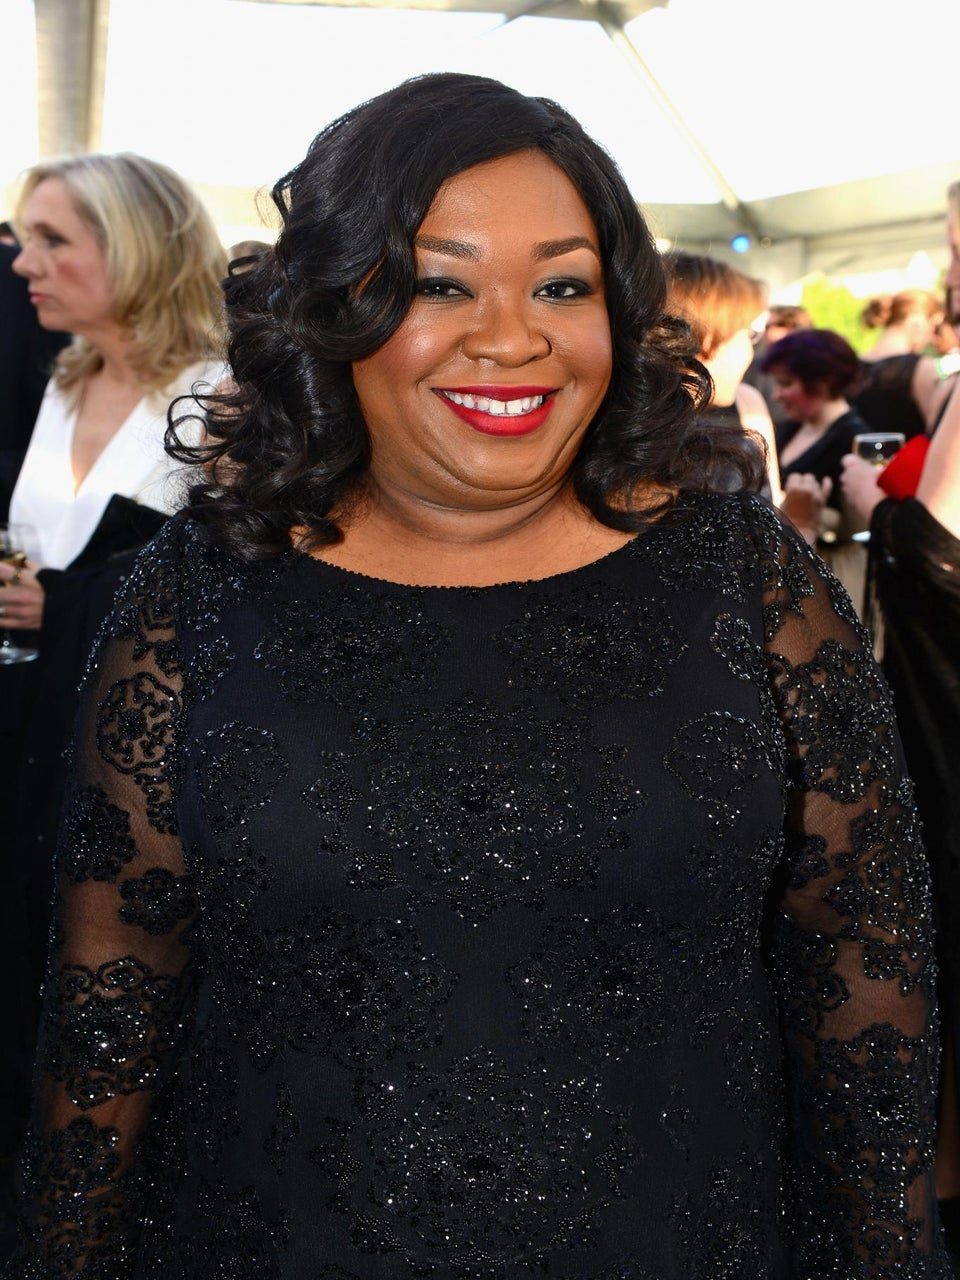 Why Shonda Rhimes Didn't Want the 'Angry Black Woman' Review Retracted